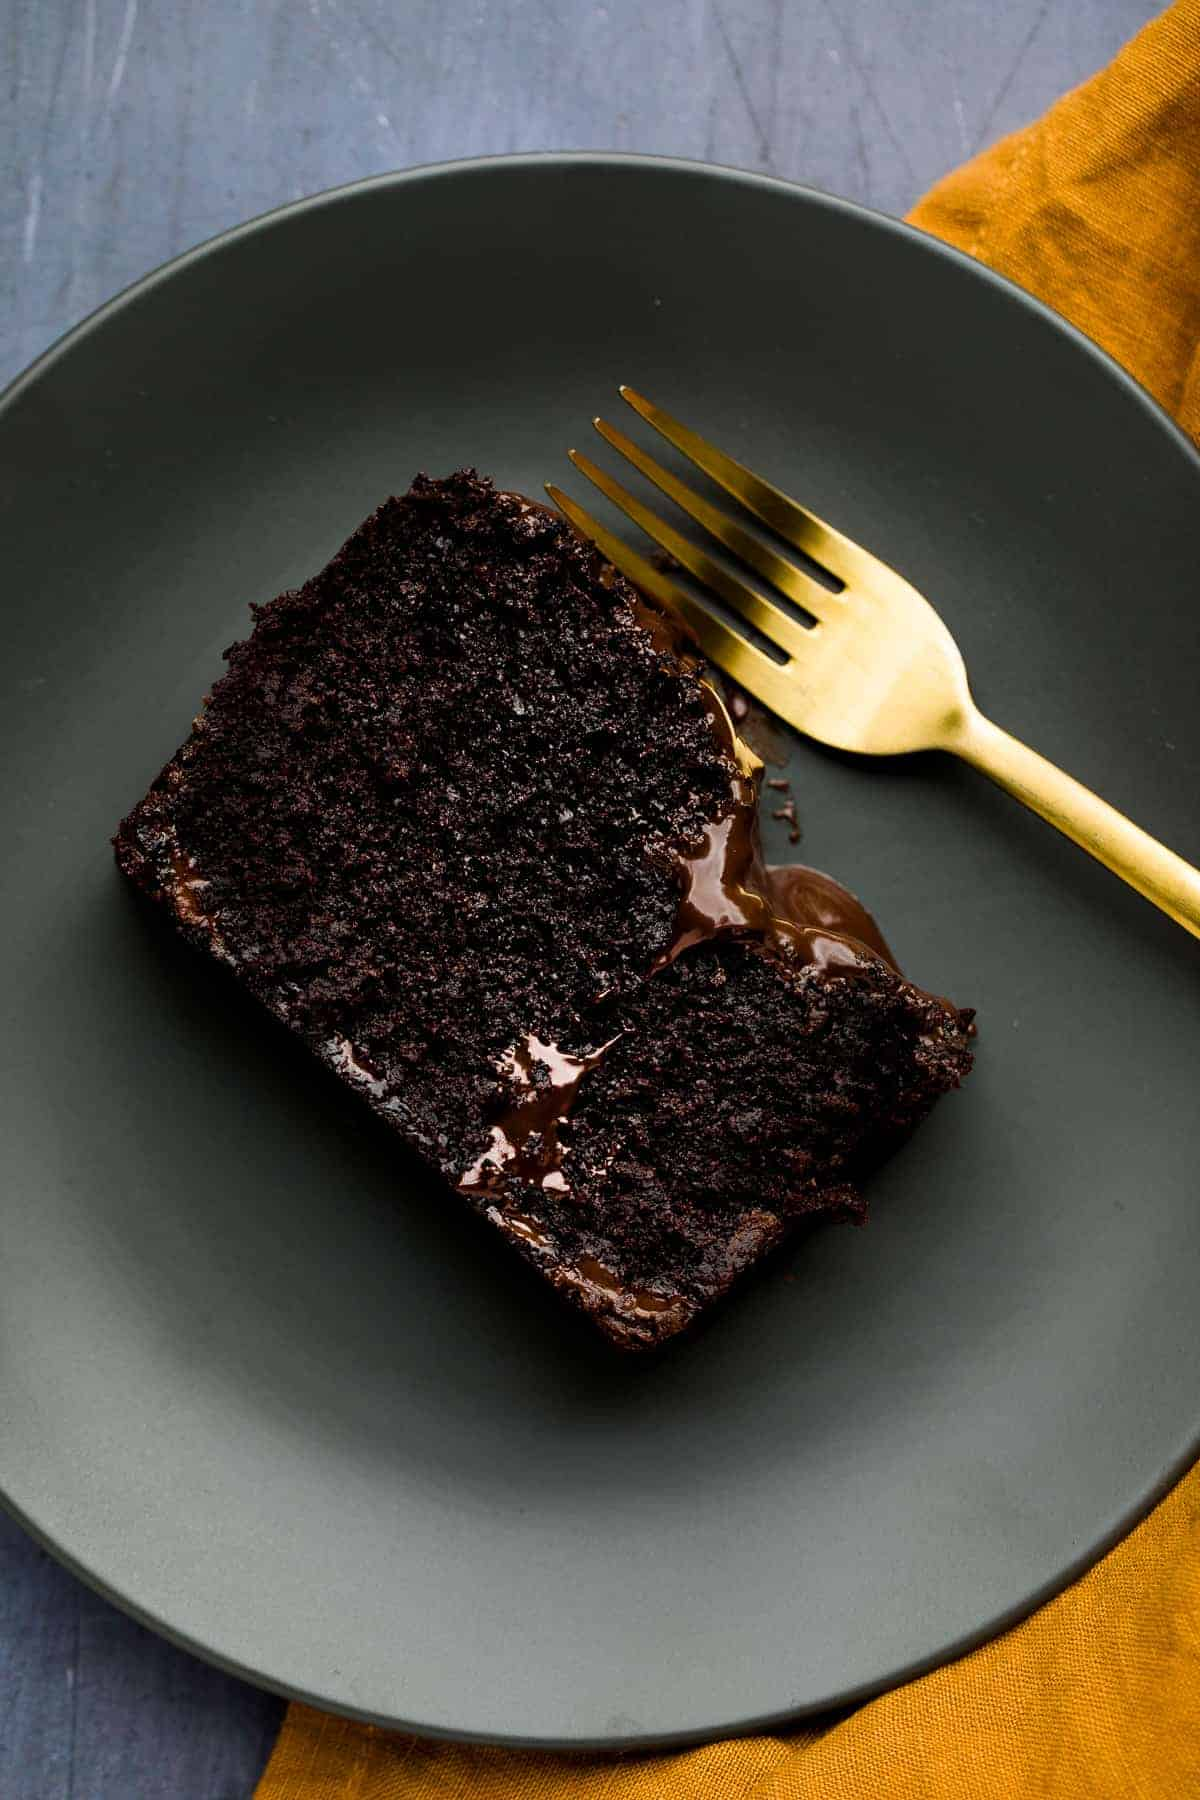 A slice of chocolate cake on a grey plate. There is melted chocolate oozing from the cake and a gold fork beside it.